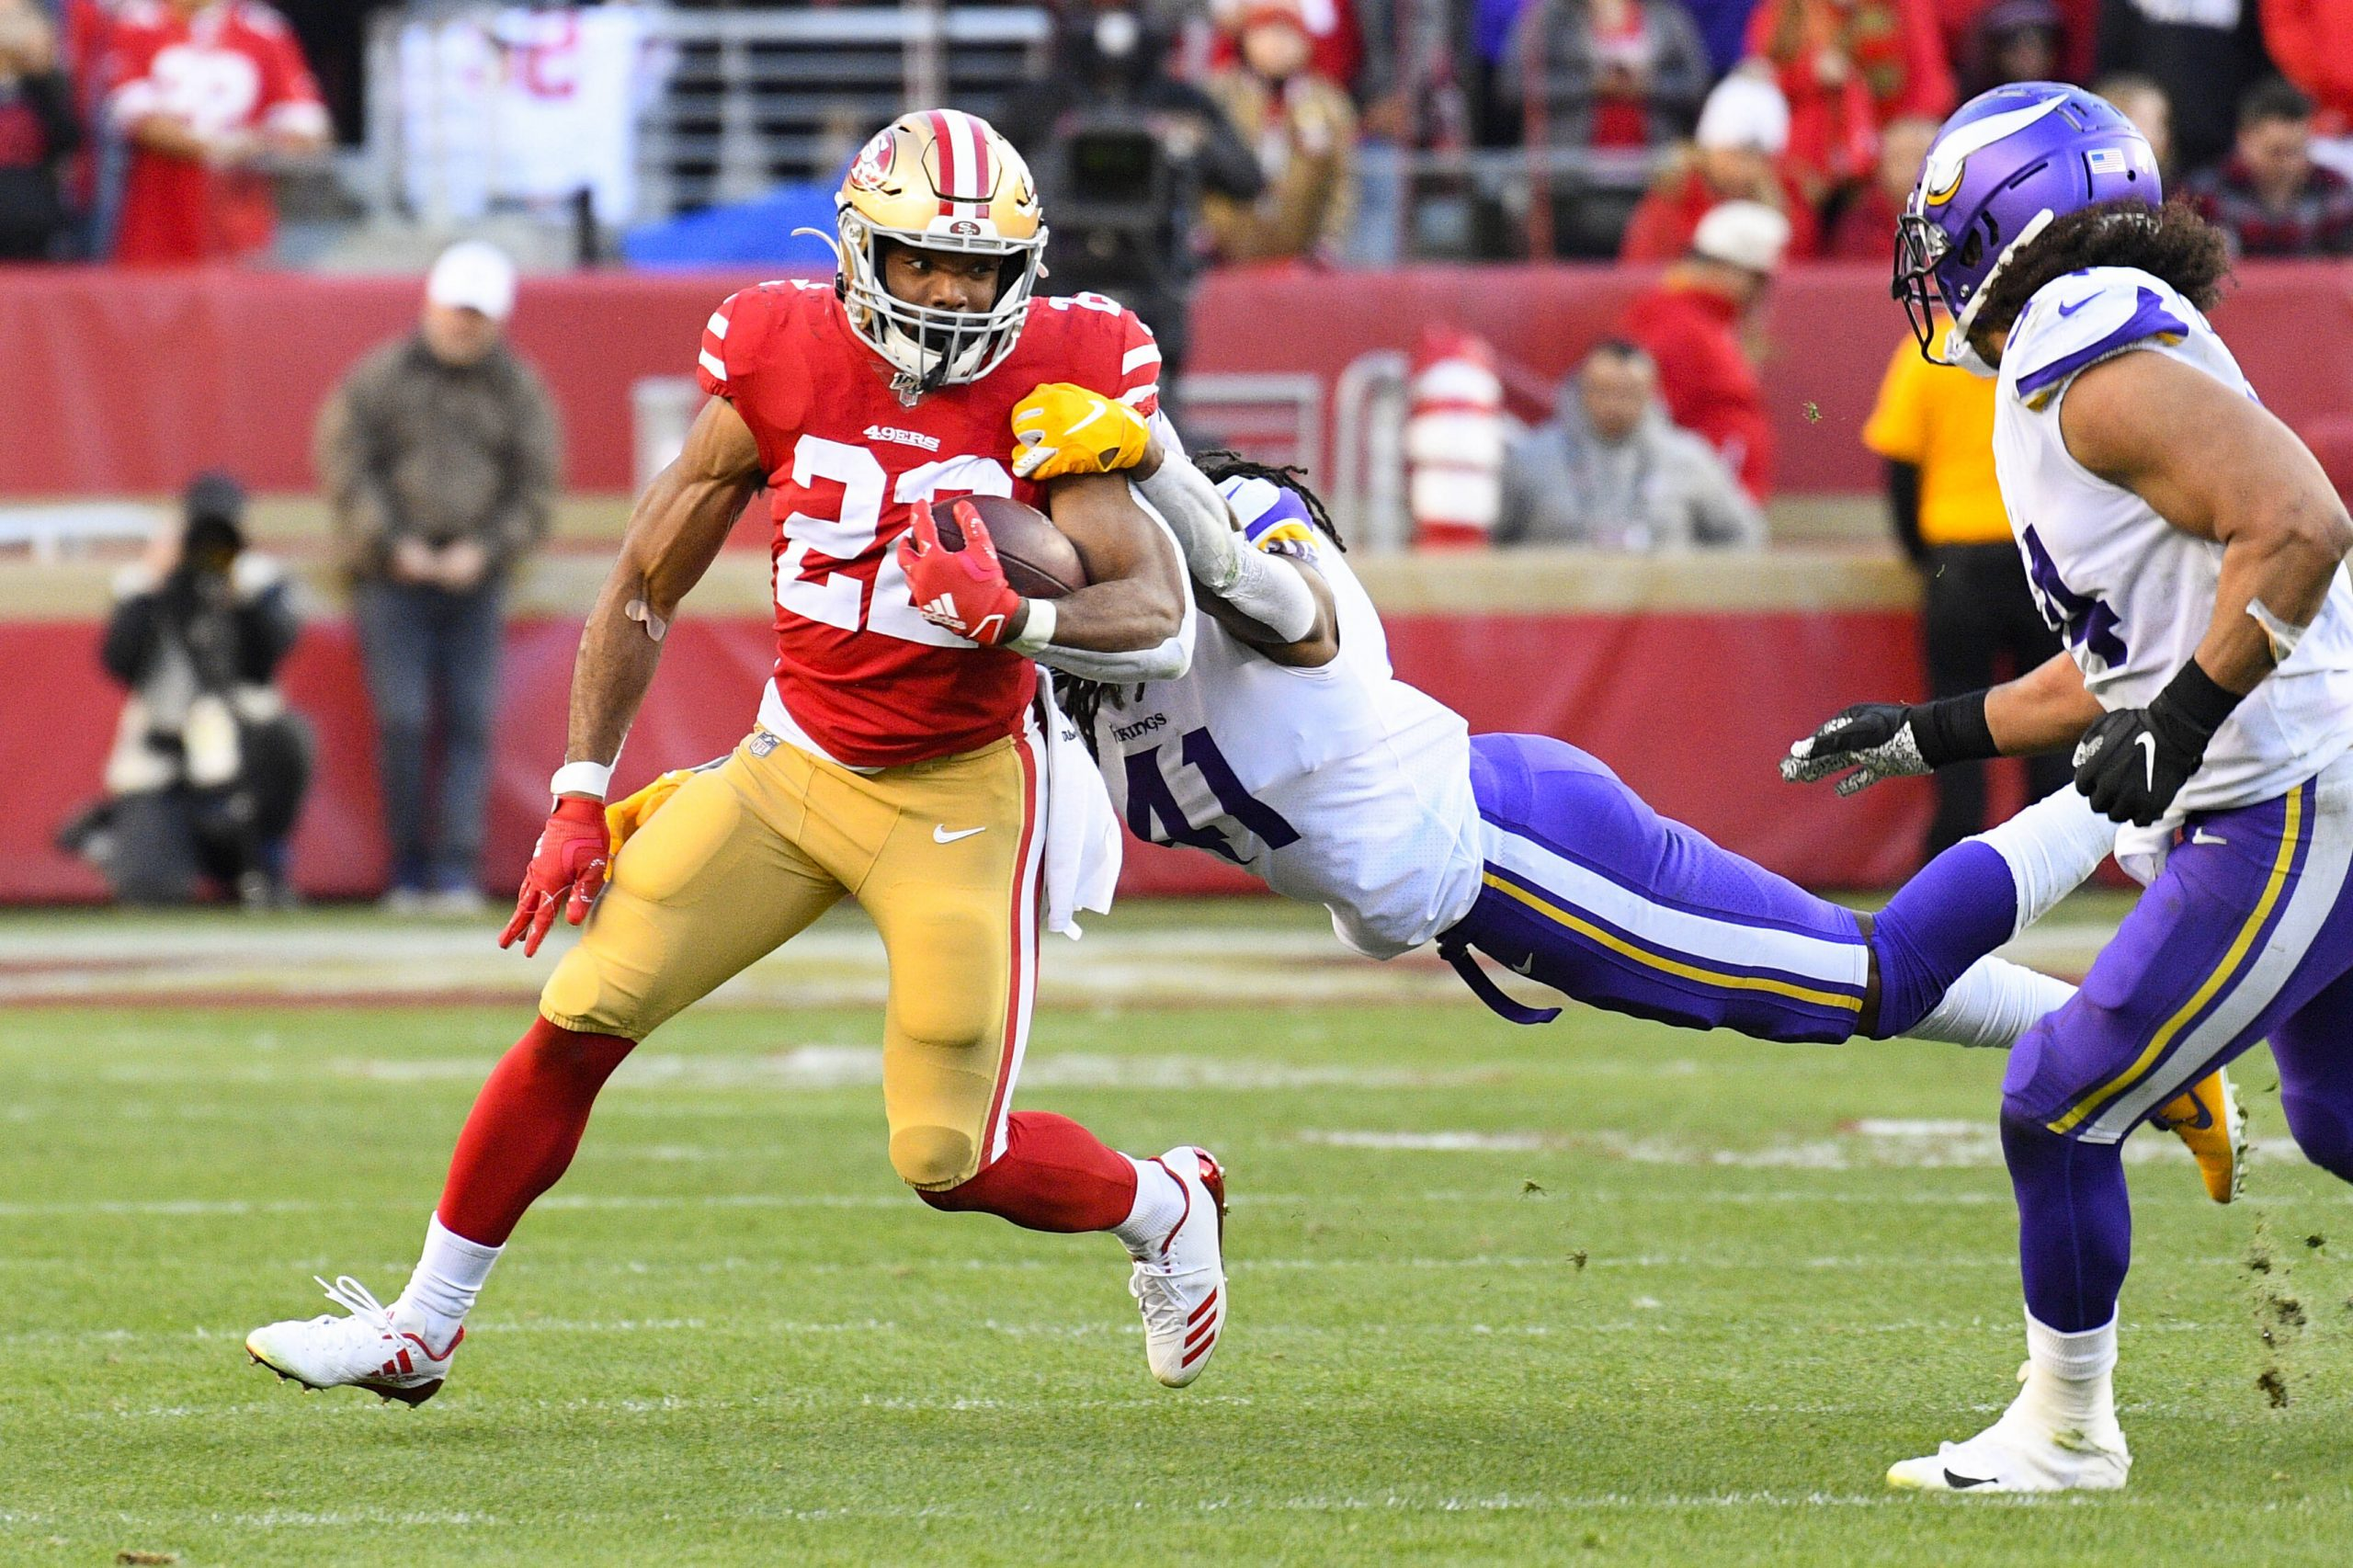 SANTA CLARA, CA - JANUARY 11: San Francisco 49ers Running Back Matt Breida 22 runs as Minnesota Vikings Safety Anthony Harris 41 tries to tackle him during the NFC Divisional Playoff game between the Minnesota Vikings and the San Francisco 49ers on January 11, 2020, at Levi s Stadium in Santa Clara, CA. Photo by Brian Rothmuller/Icon Sportswire NFL, American Football Herren, USA JAN 11 NFC Divisional Playoff - Vikings at 49ers Icon200111027